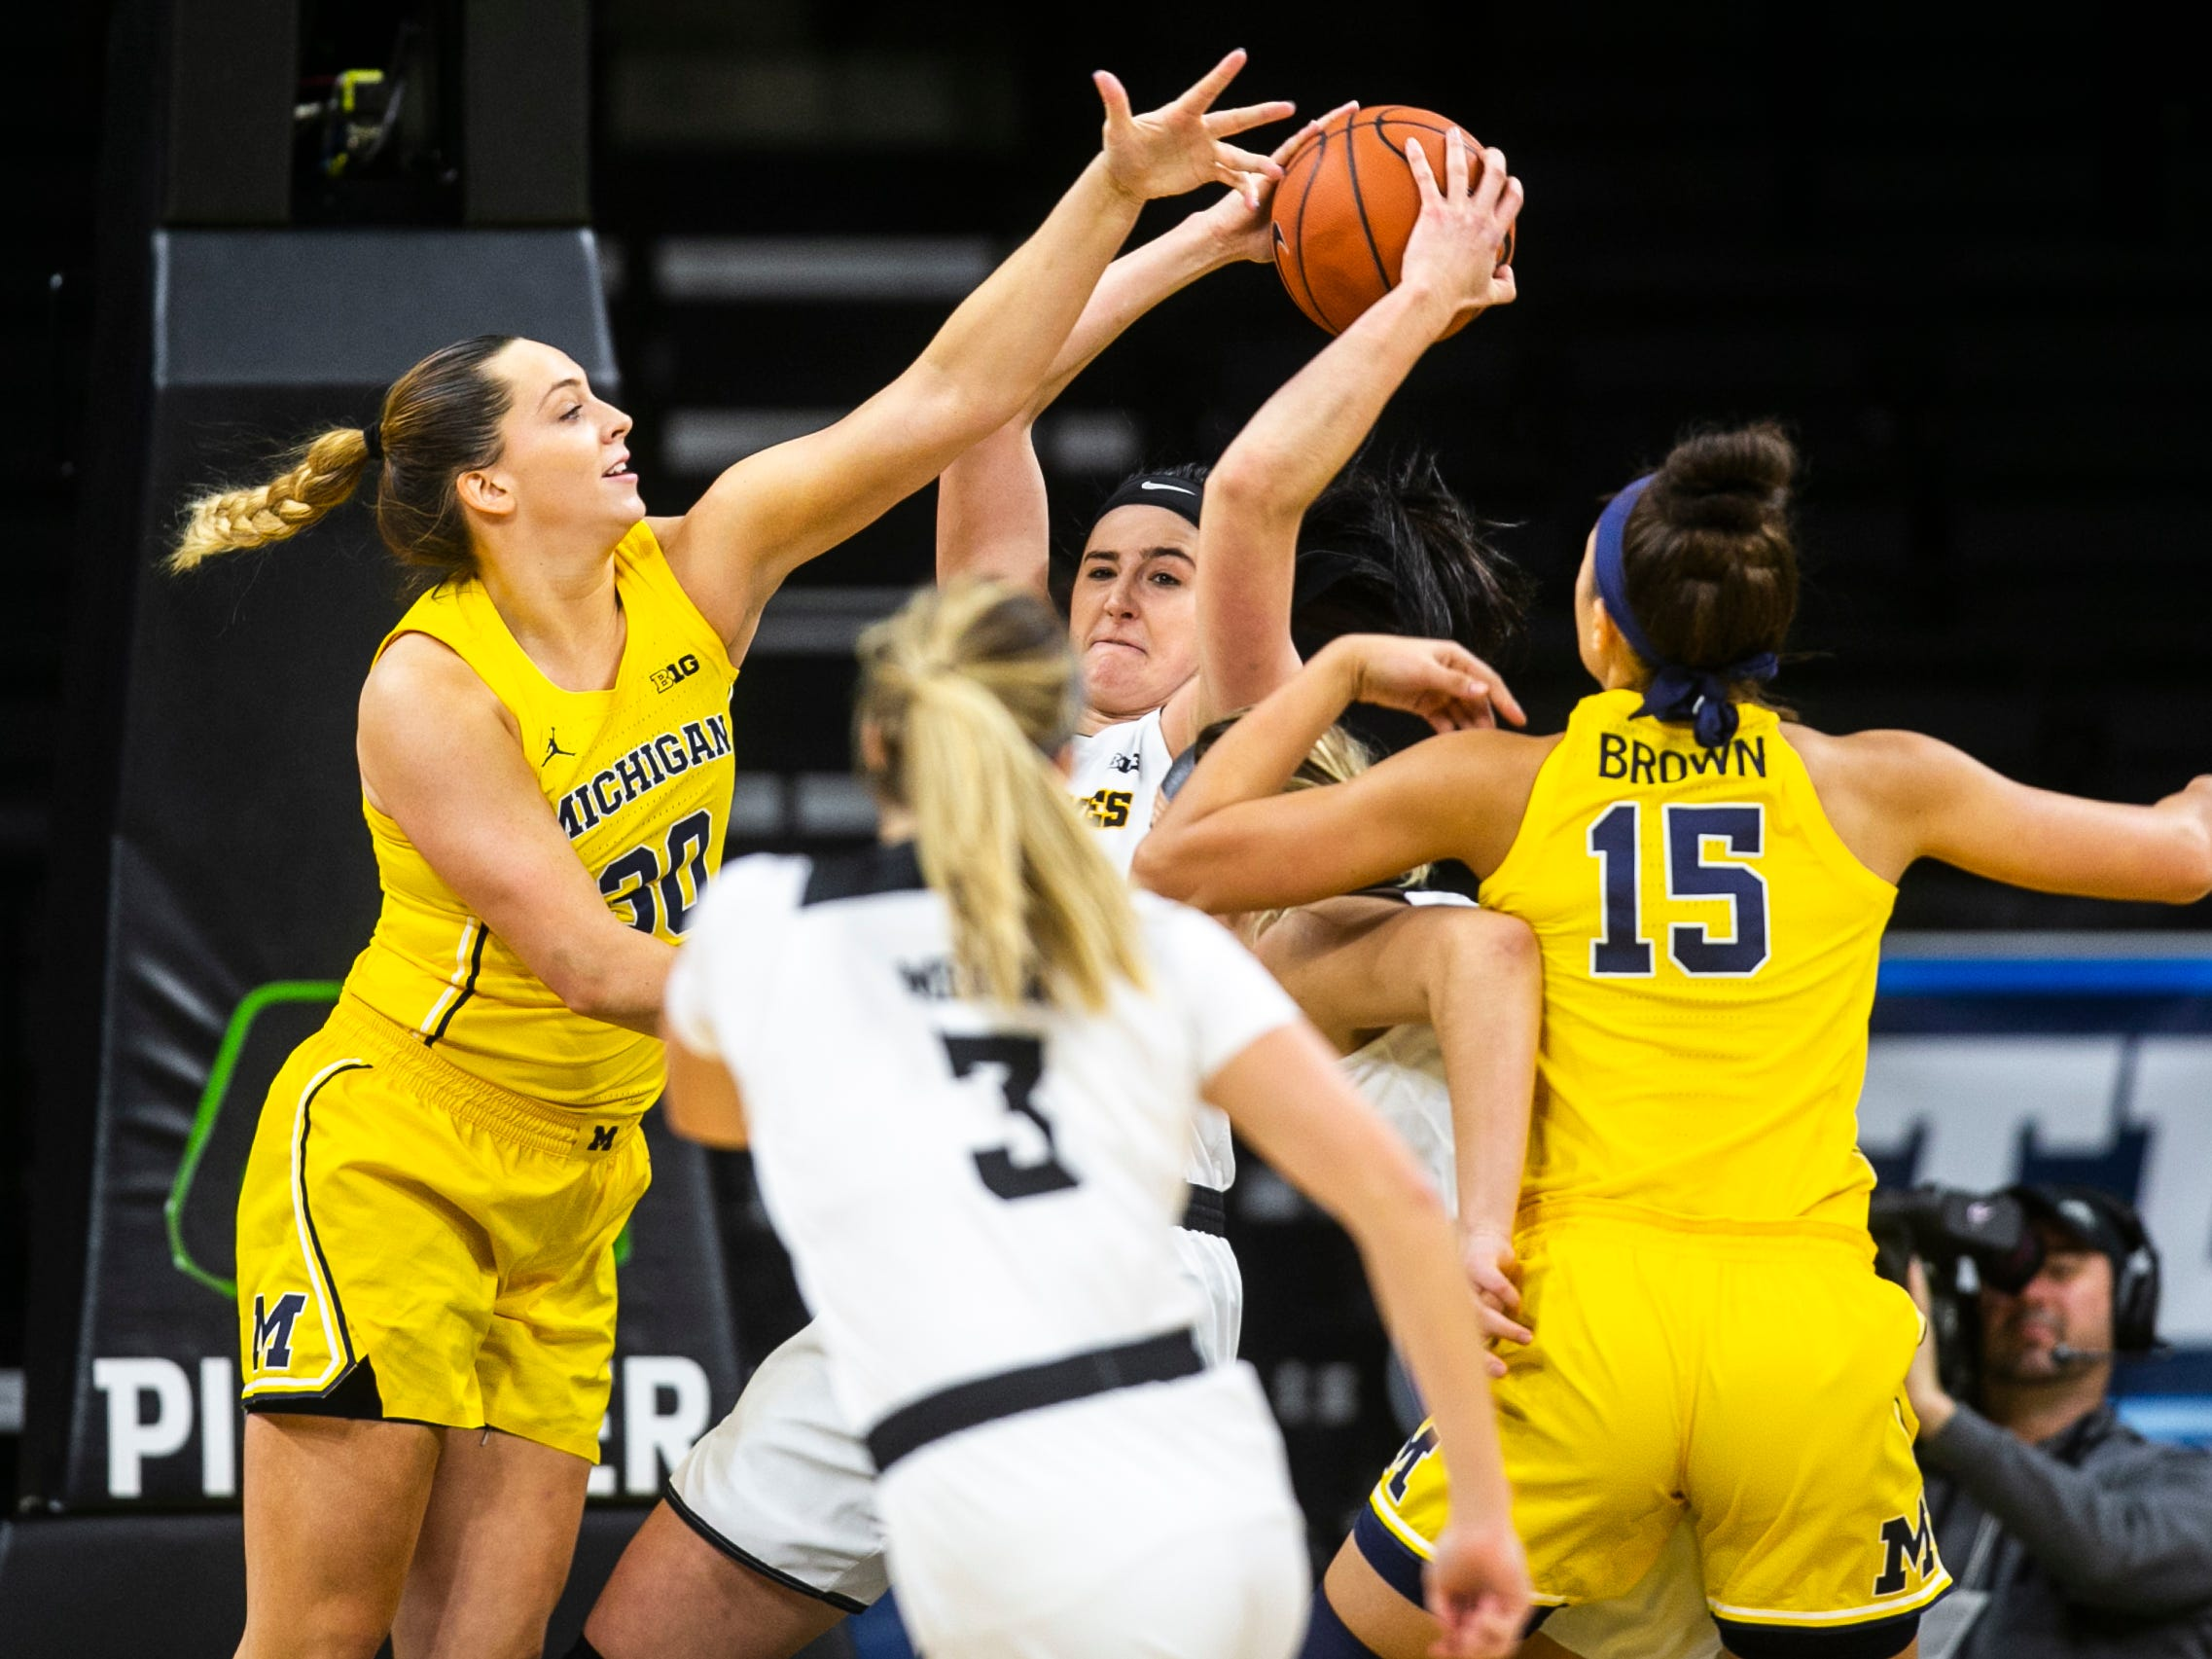 Iowa forward Megan Gustafson (10) pulls down a rebound past Michigan center Hallie Thome (30) and Michigan forward Hailey Brown (15) during a NCAA Big Ten Conference women's basketball game on Thursday, Jan. 17, 2019, at Carver-Hawkeye Arena in Iowa City, Iowa.